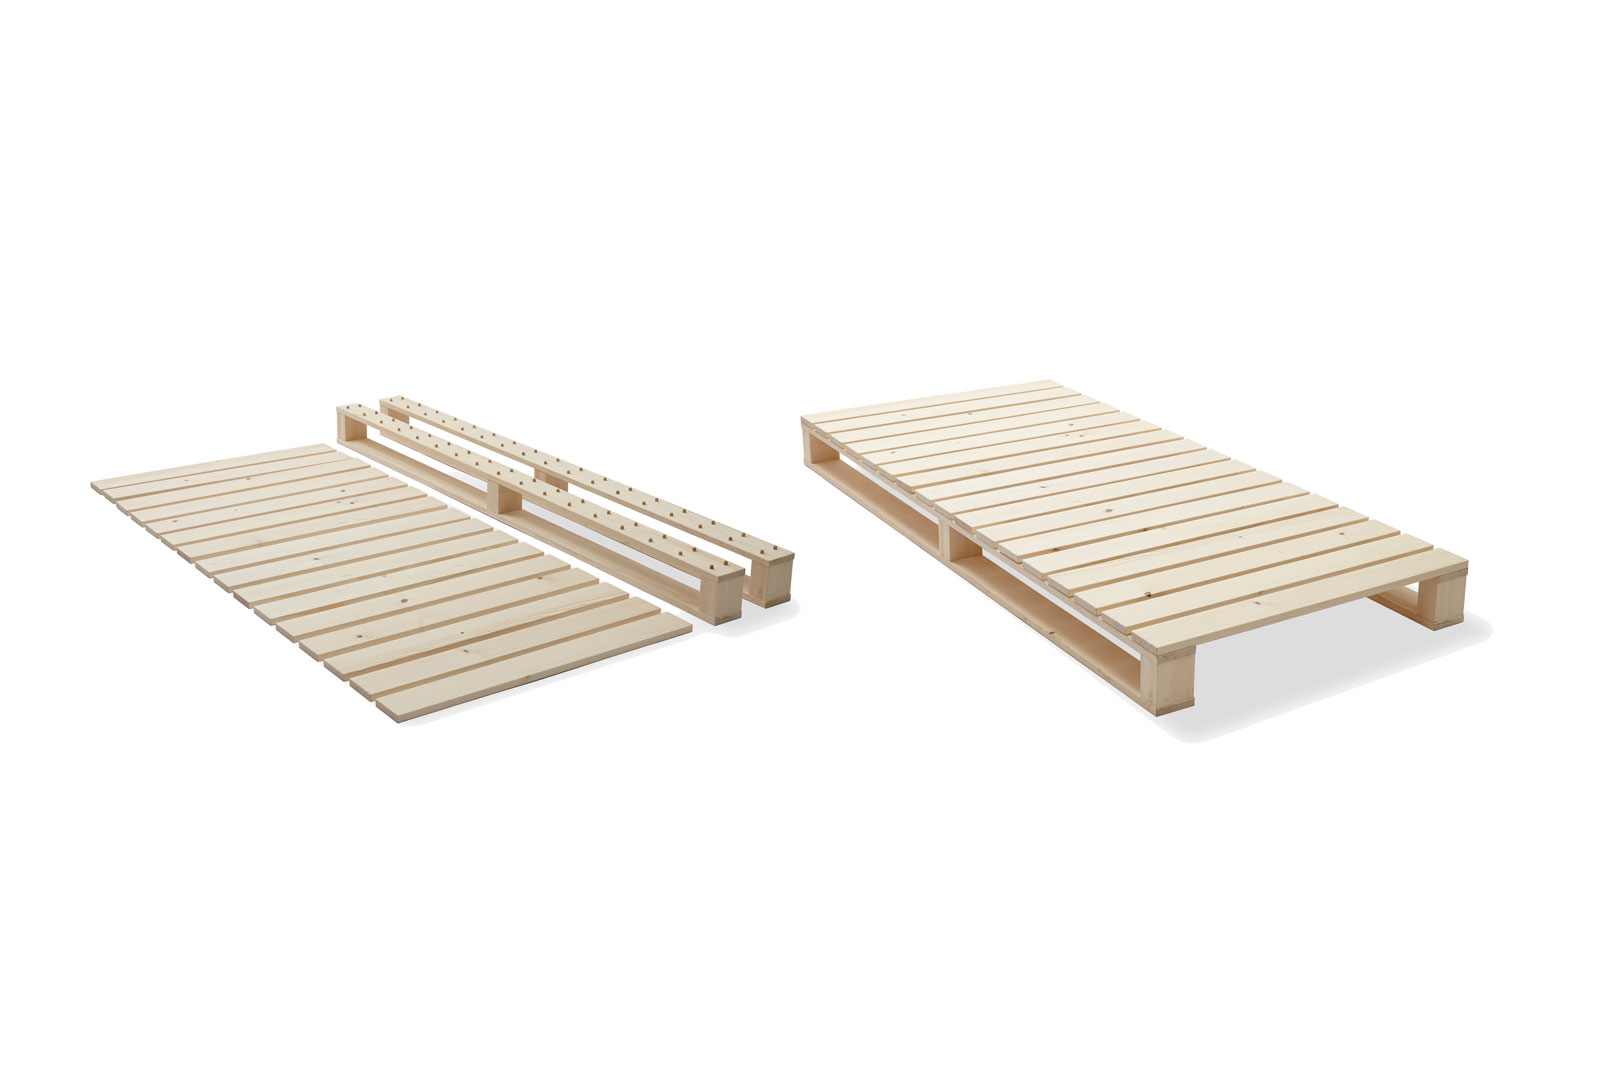 Wooden minute bed, made in Switzerland